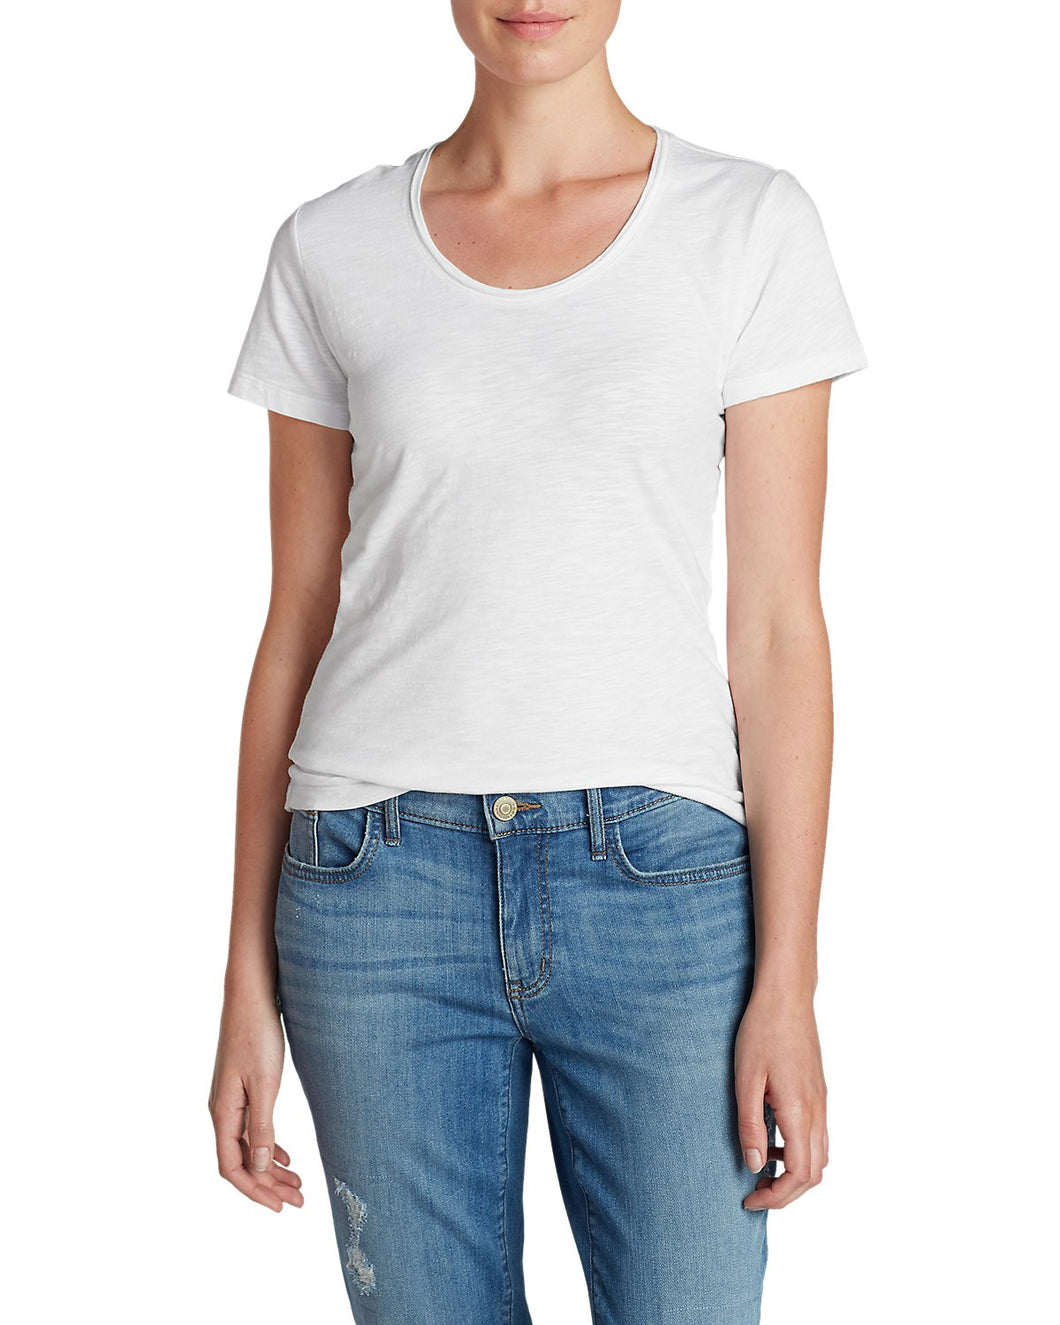 Eddie Bauer Womens Size 3X-Large Short Sleeve Scoop Neck Tee Shirt, White